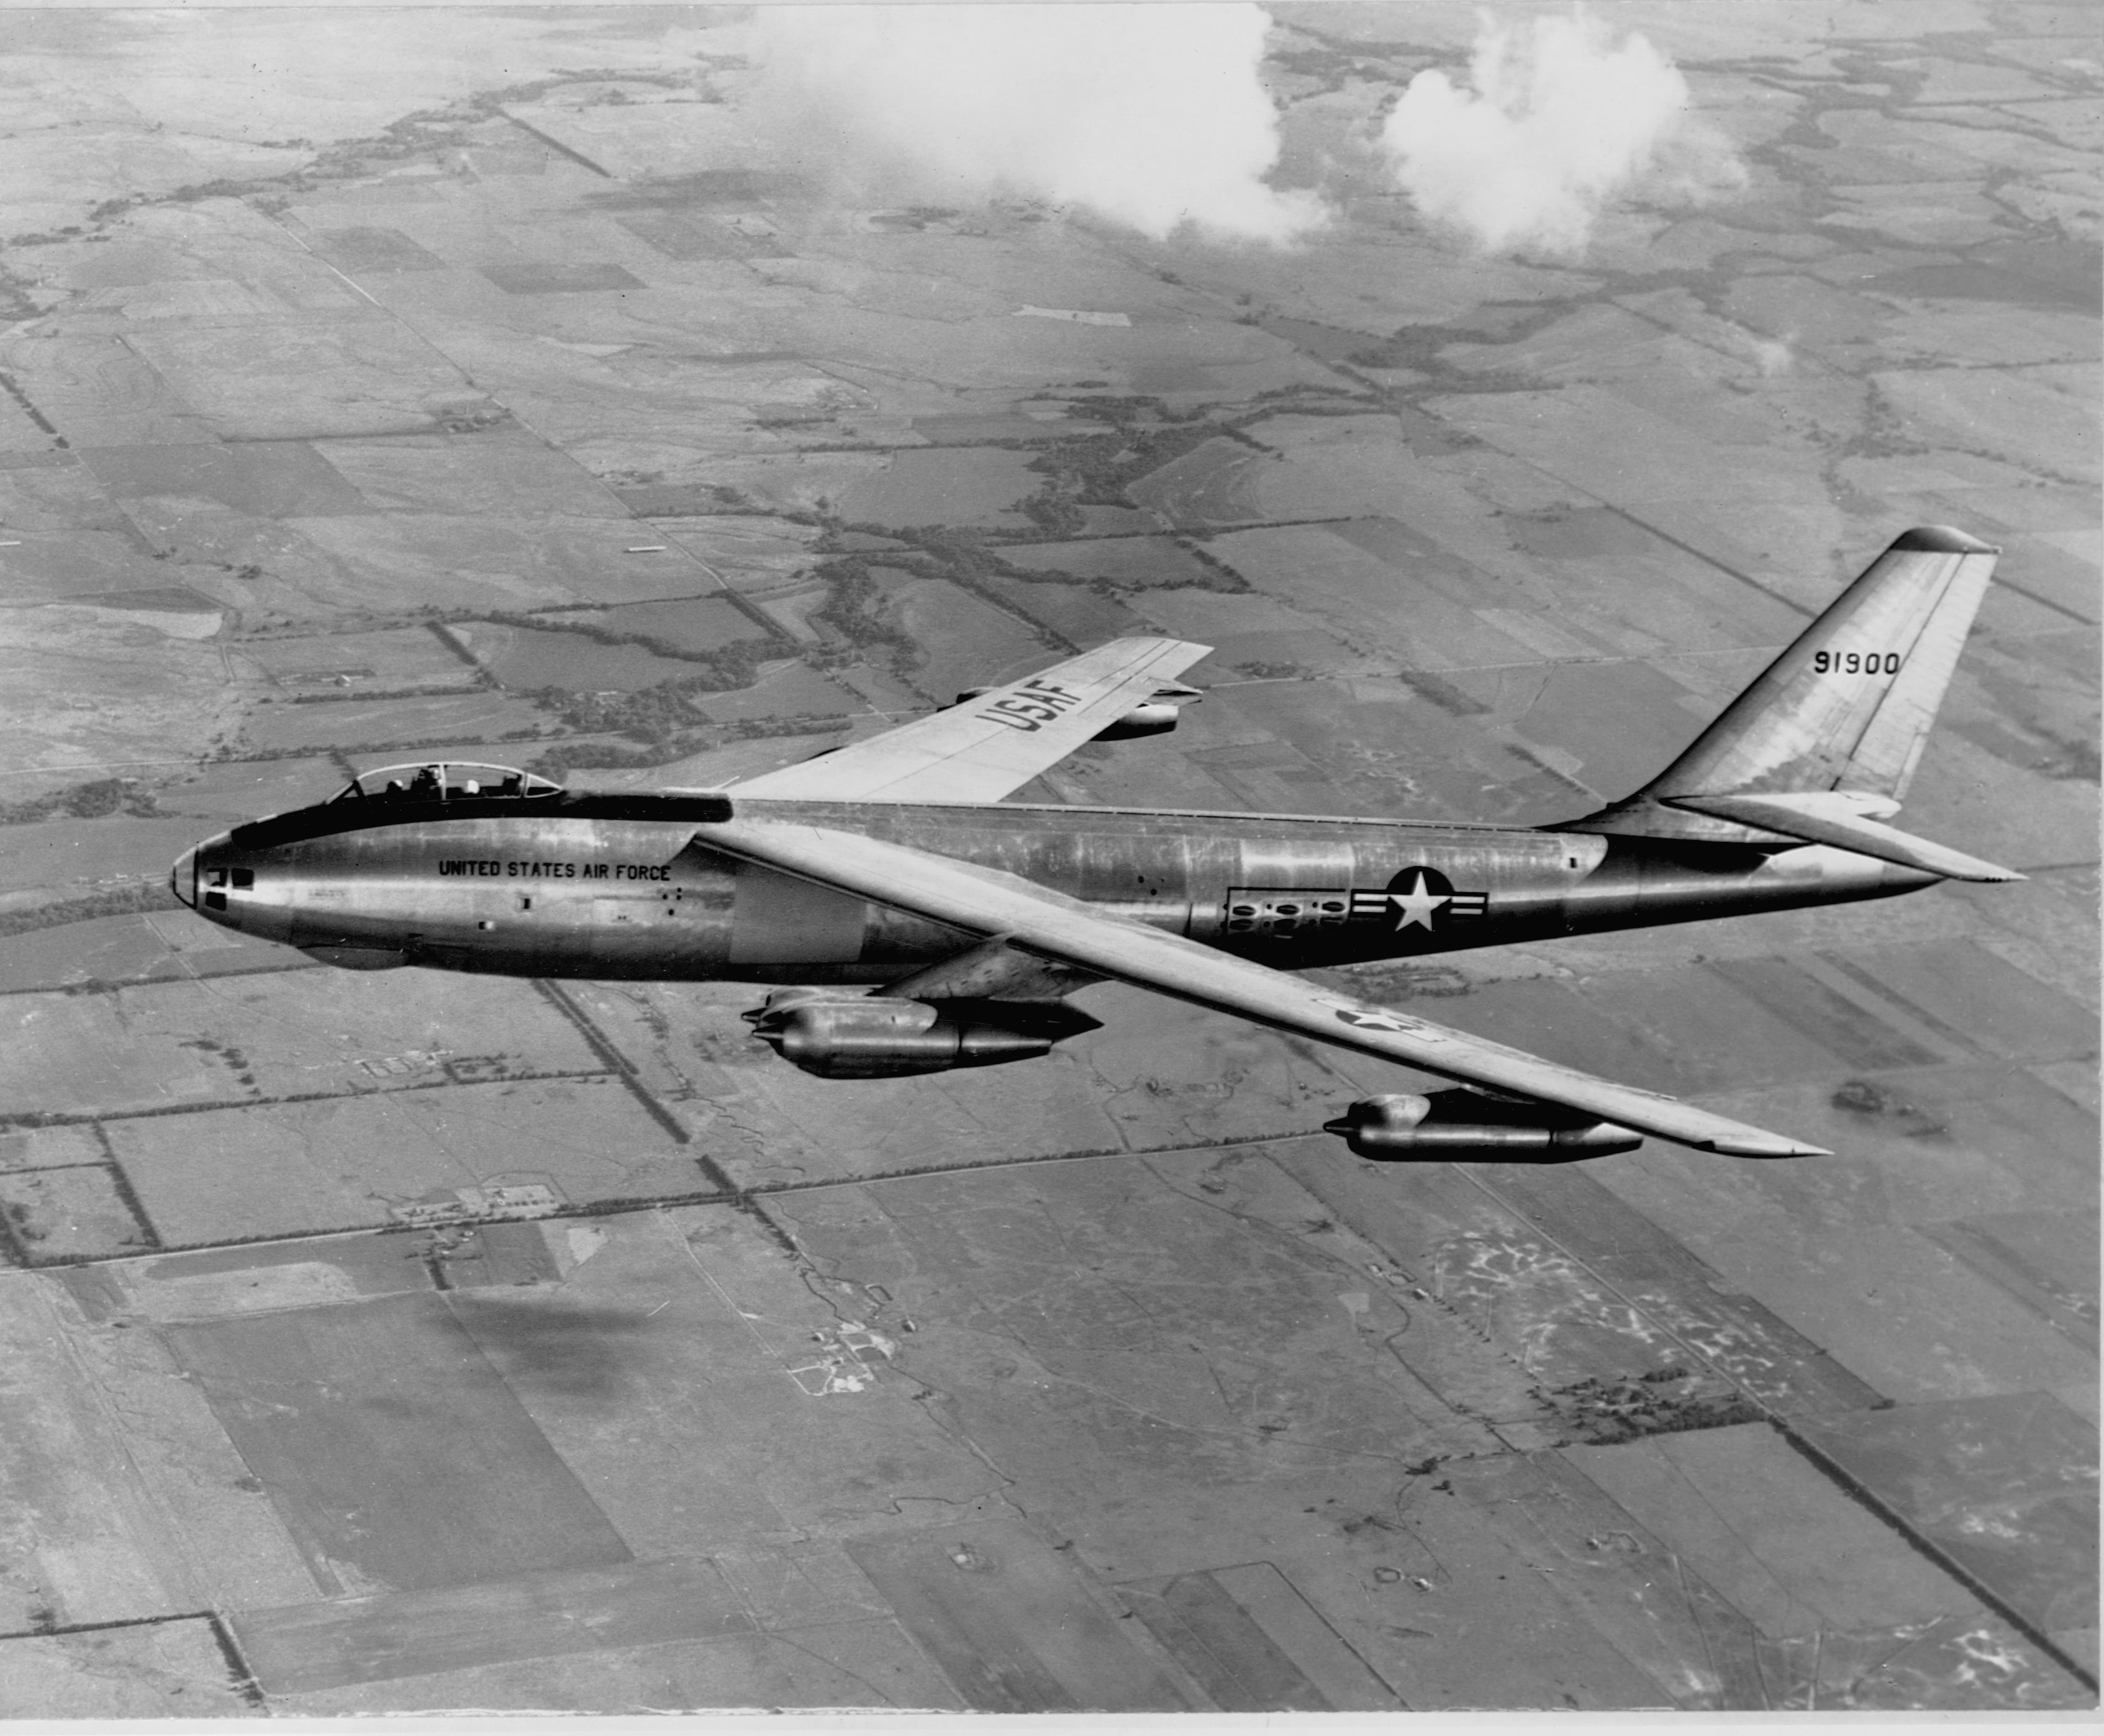 Sixty Years Ago, a Pilot Flew a B-47 Nuclear Bomber Under Michigan's Mackinac Bridge